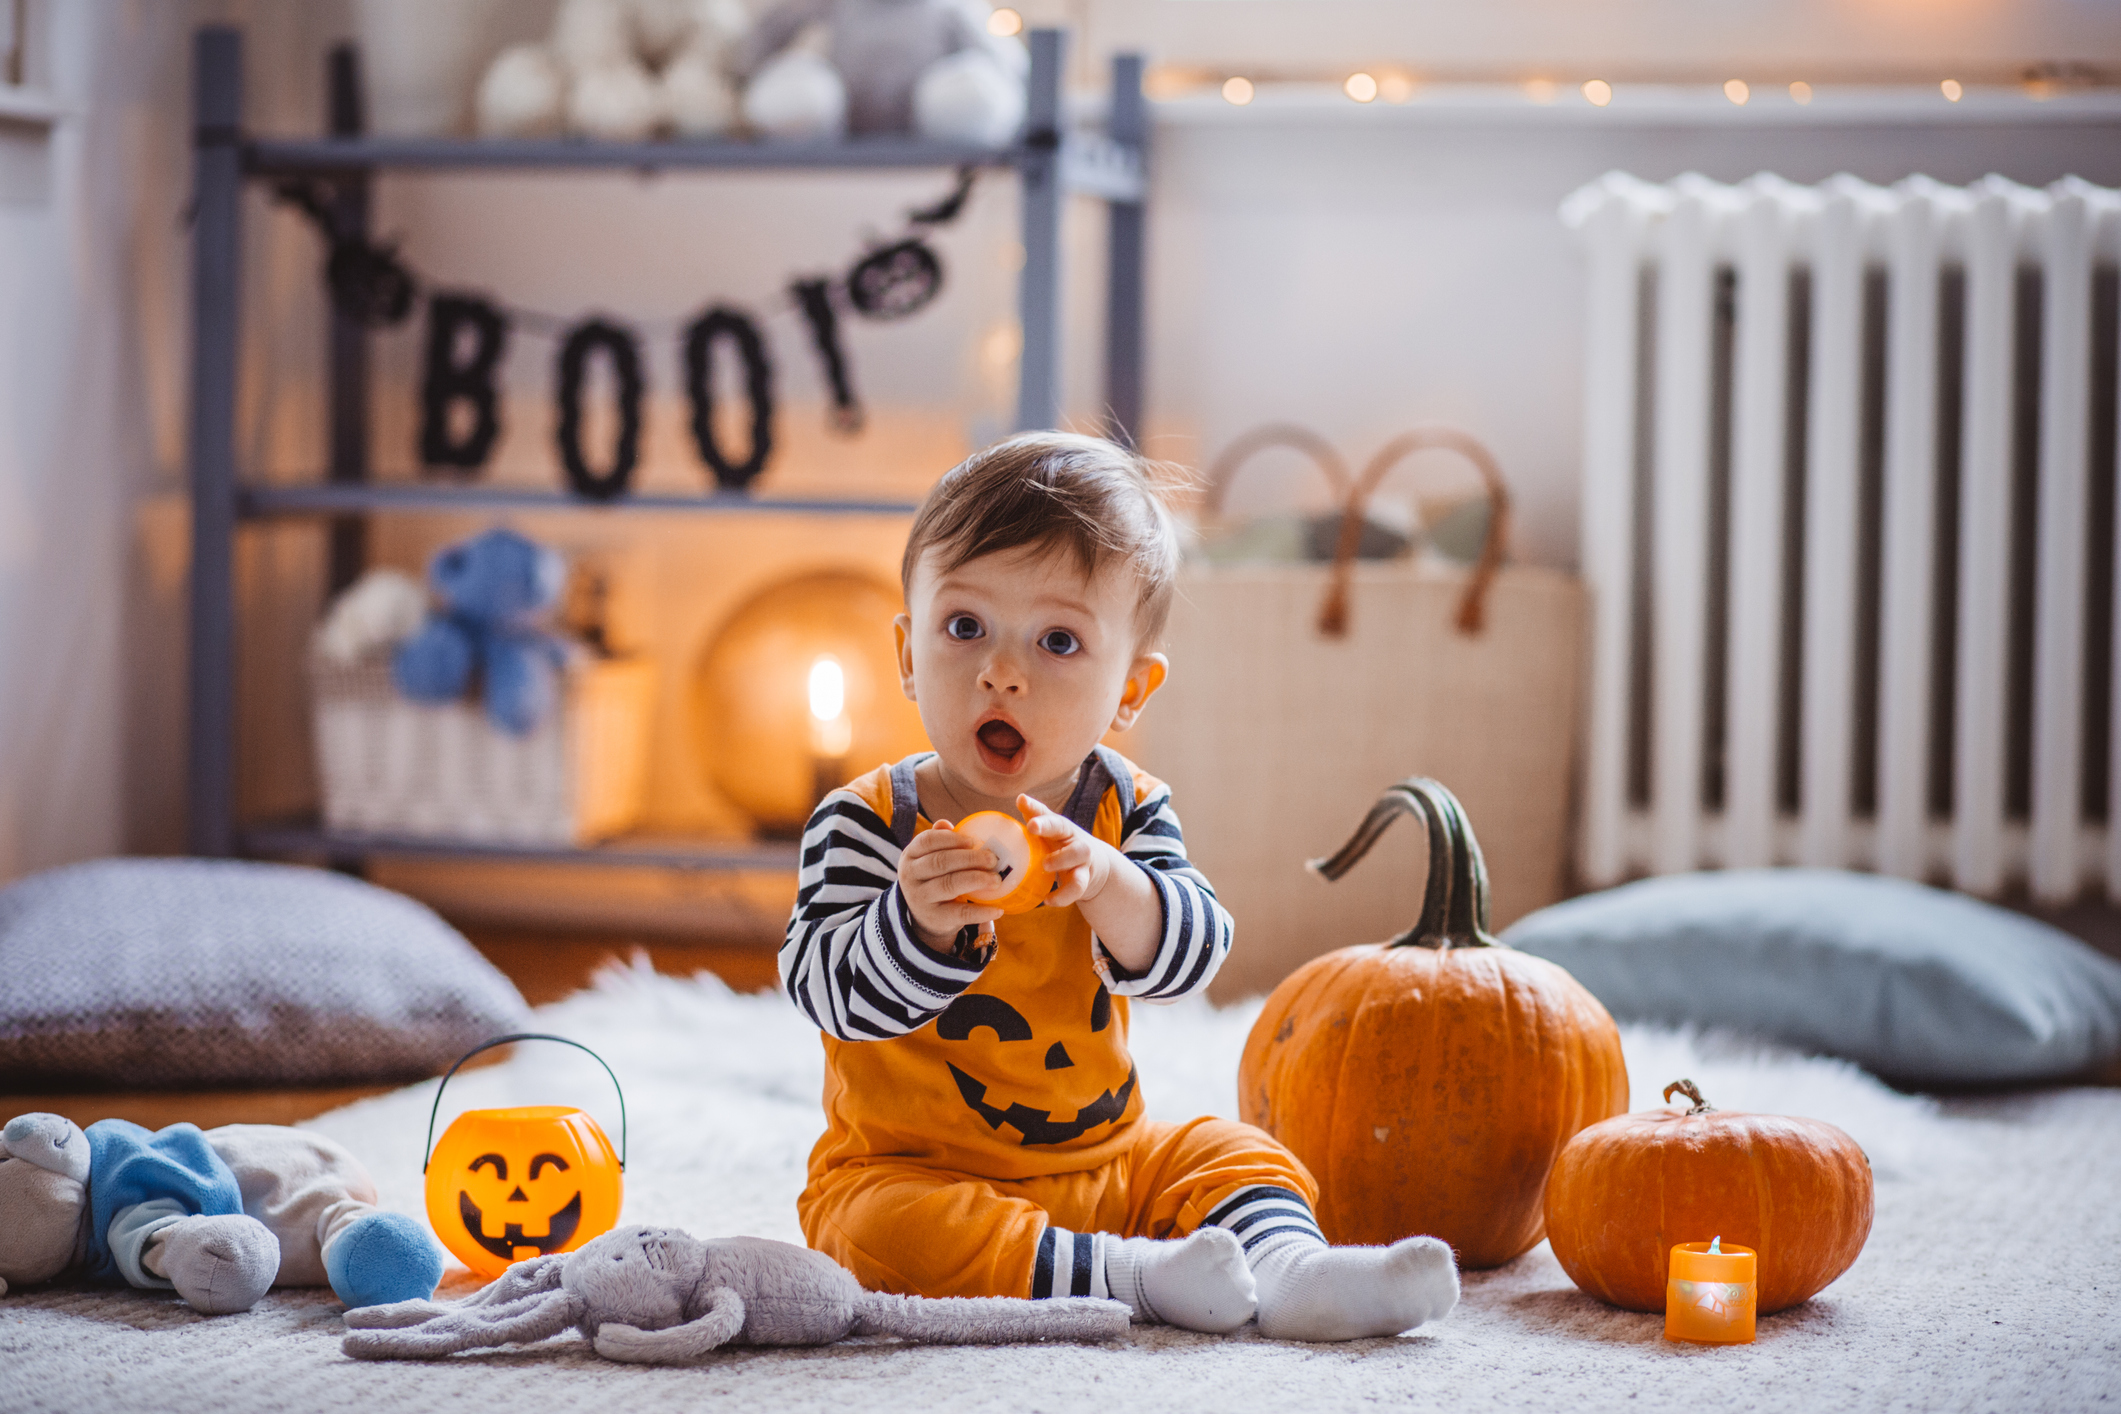 Baby boy wear costume and playing on floor on Halloween